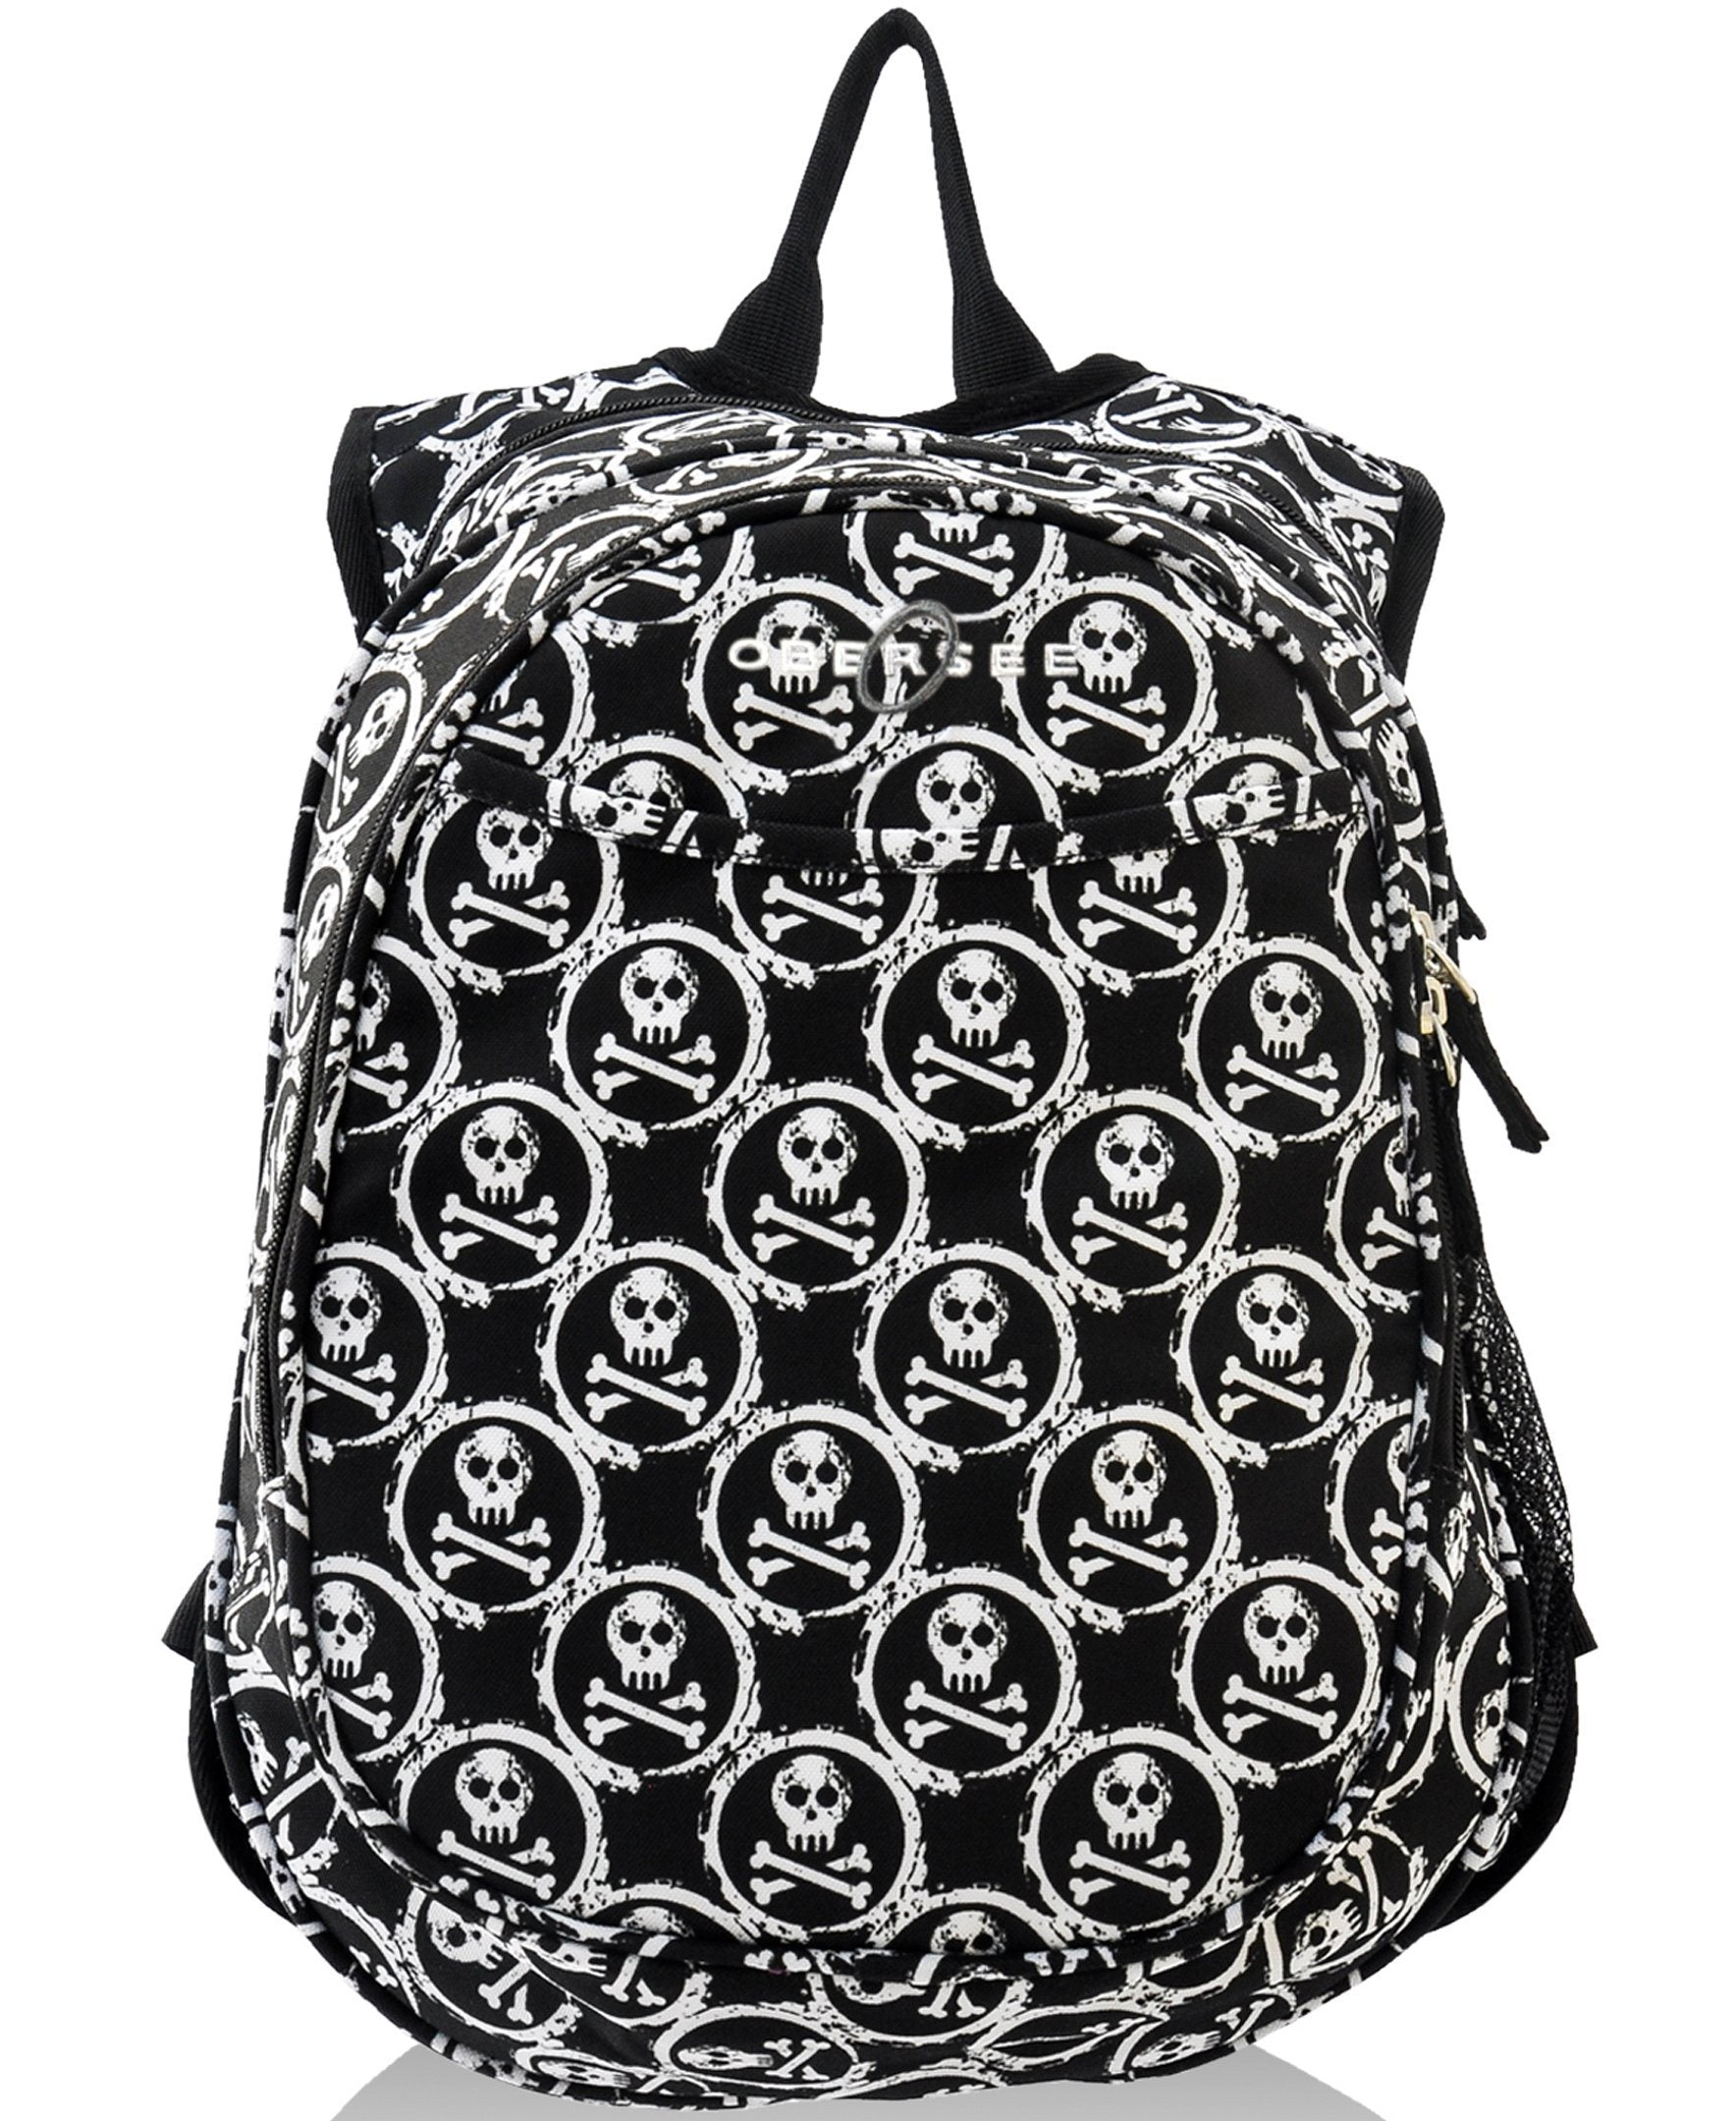 O3KCBP016 Obersee Mini Preschool All-in-One Backpack for Toddlers and Kids with integrated Insulated Cooler | Skulls